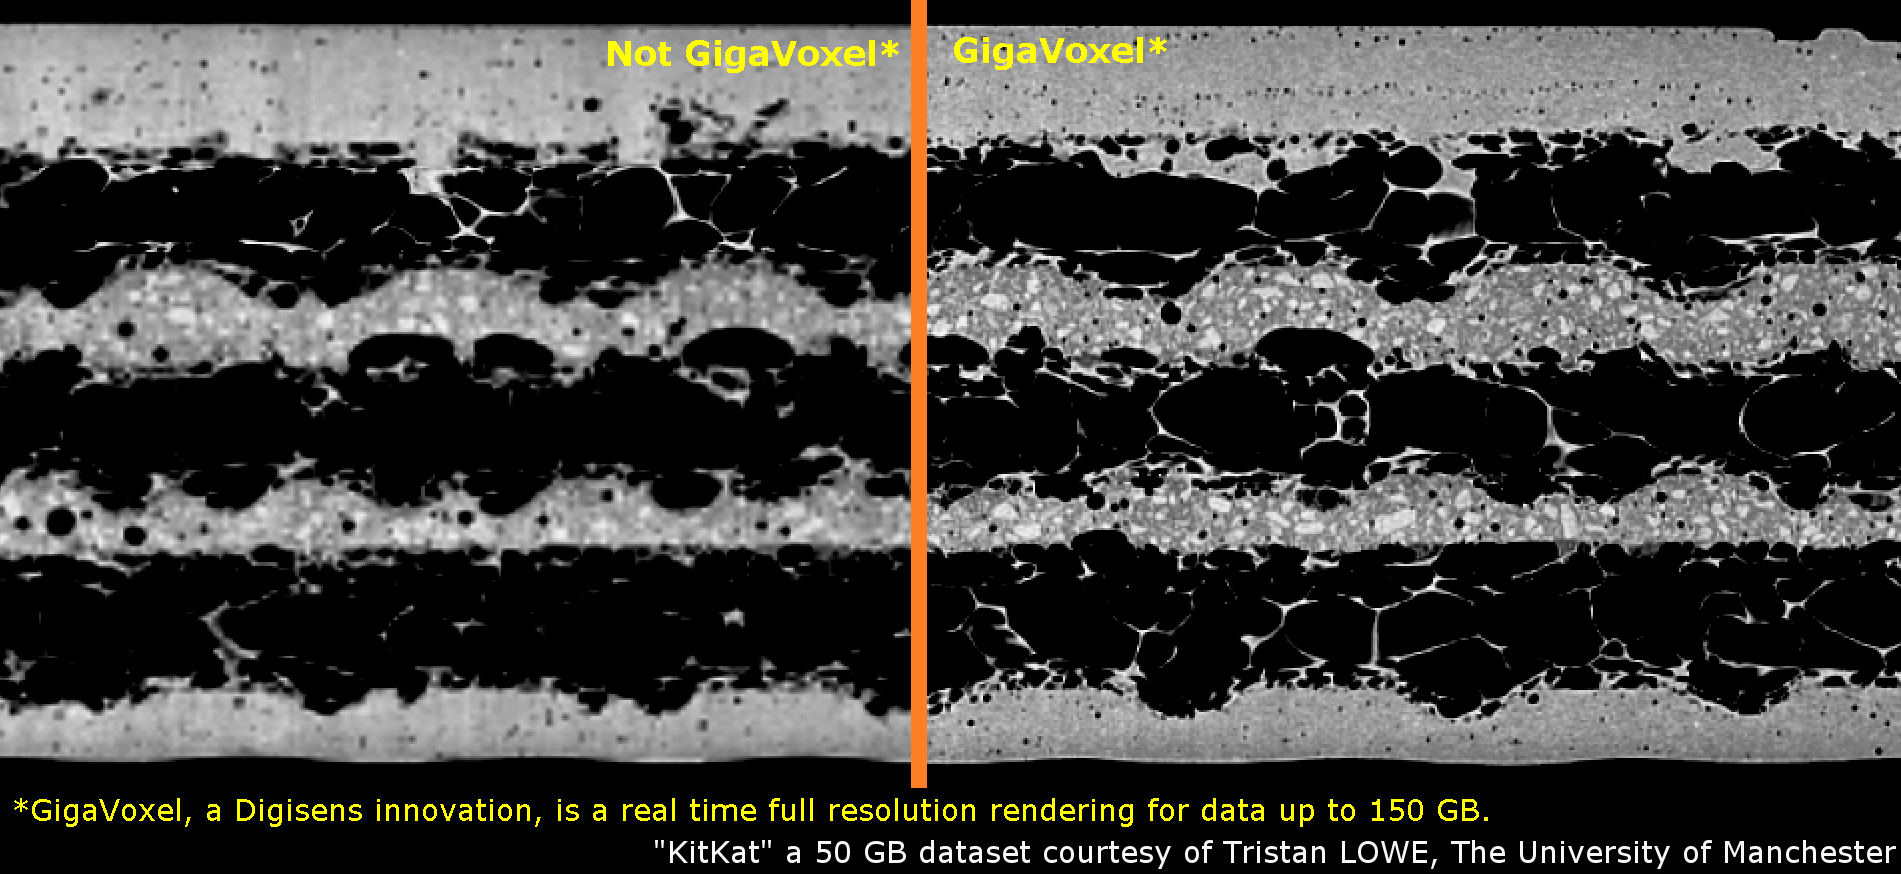 GigaVoxel rendering by Digisens